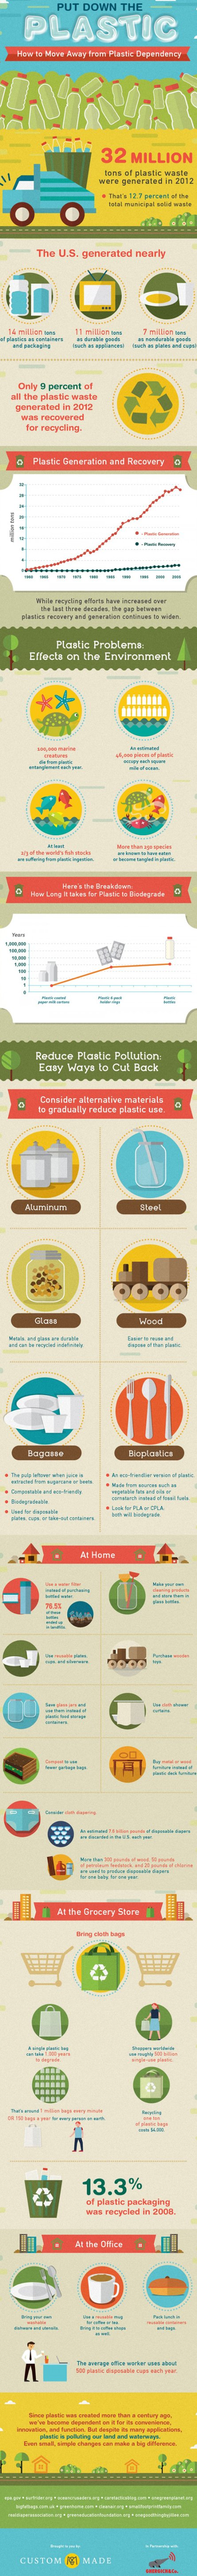 plastic_infographic_scale_size4